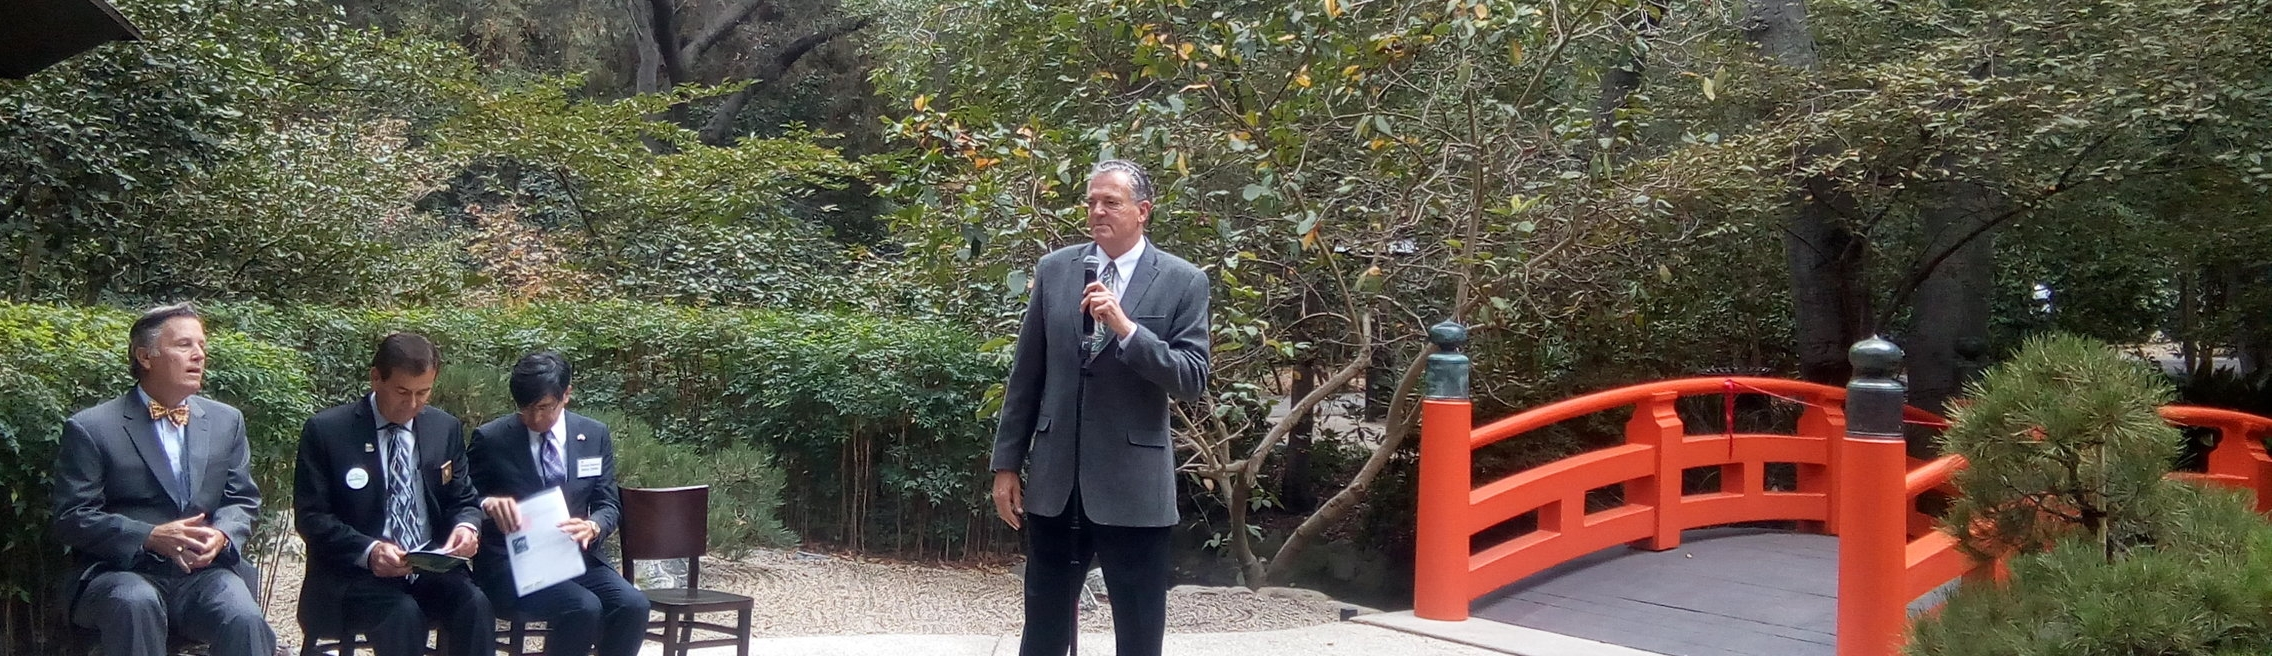 October 16, 2016  CEO of Descanso Gardens David Brown speaks eloquently about the history of the Japanese Garden. The Bridge, installed in 1967 and restored by me for it's 50th anniversary ribbon cutting rededication, was design by Kenneth Nishimoto.